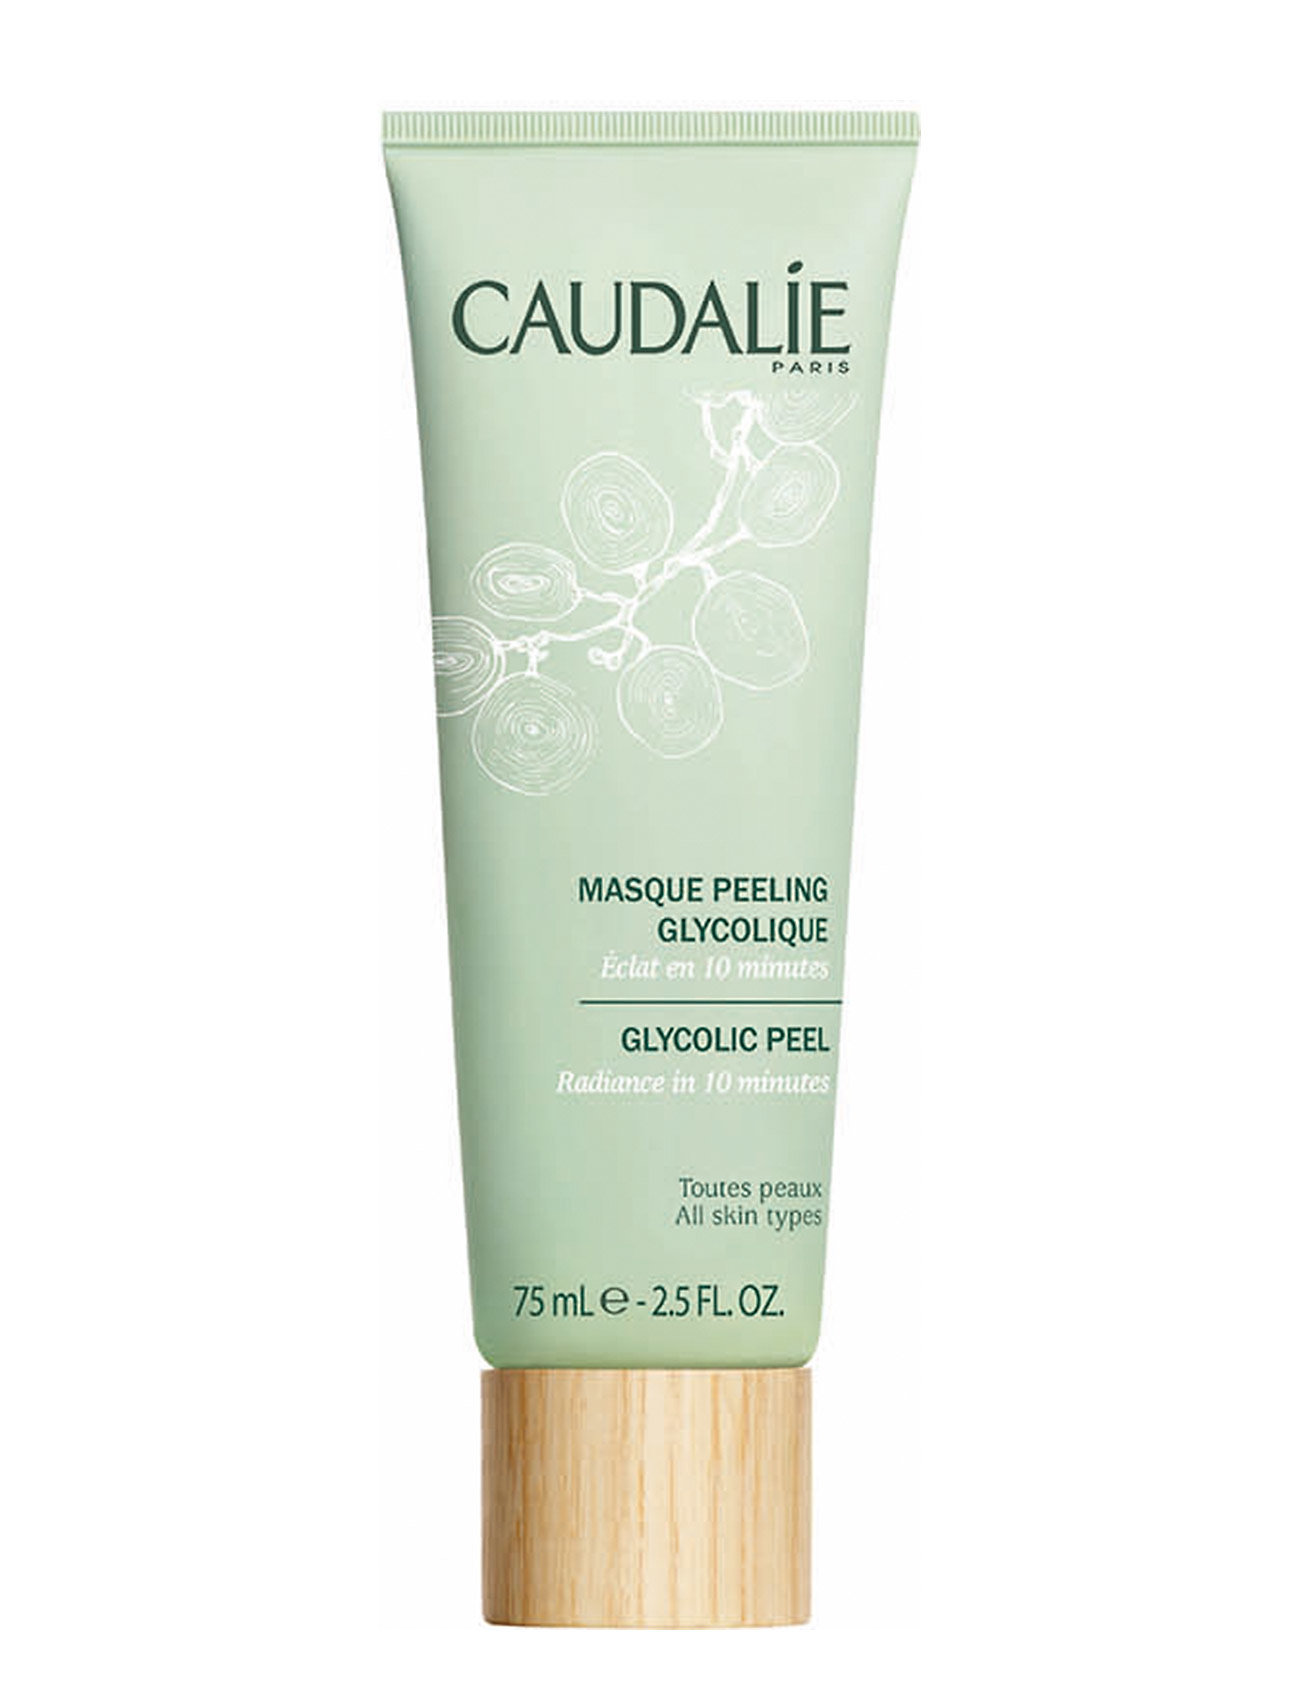 Image of Glycolic Peel Mask Beauty WOMEN Skin Care Face Face Masks Nude CAUDALIE (3350772101)